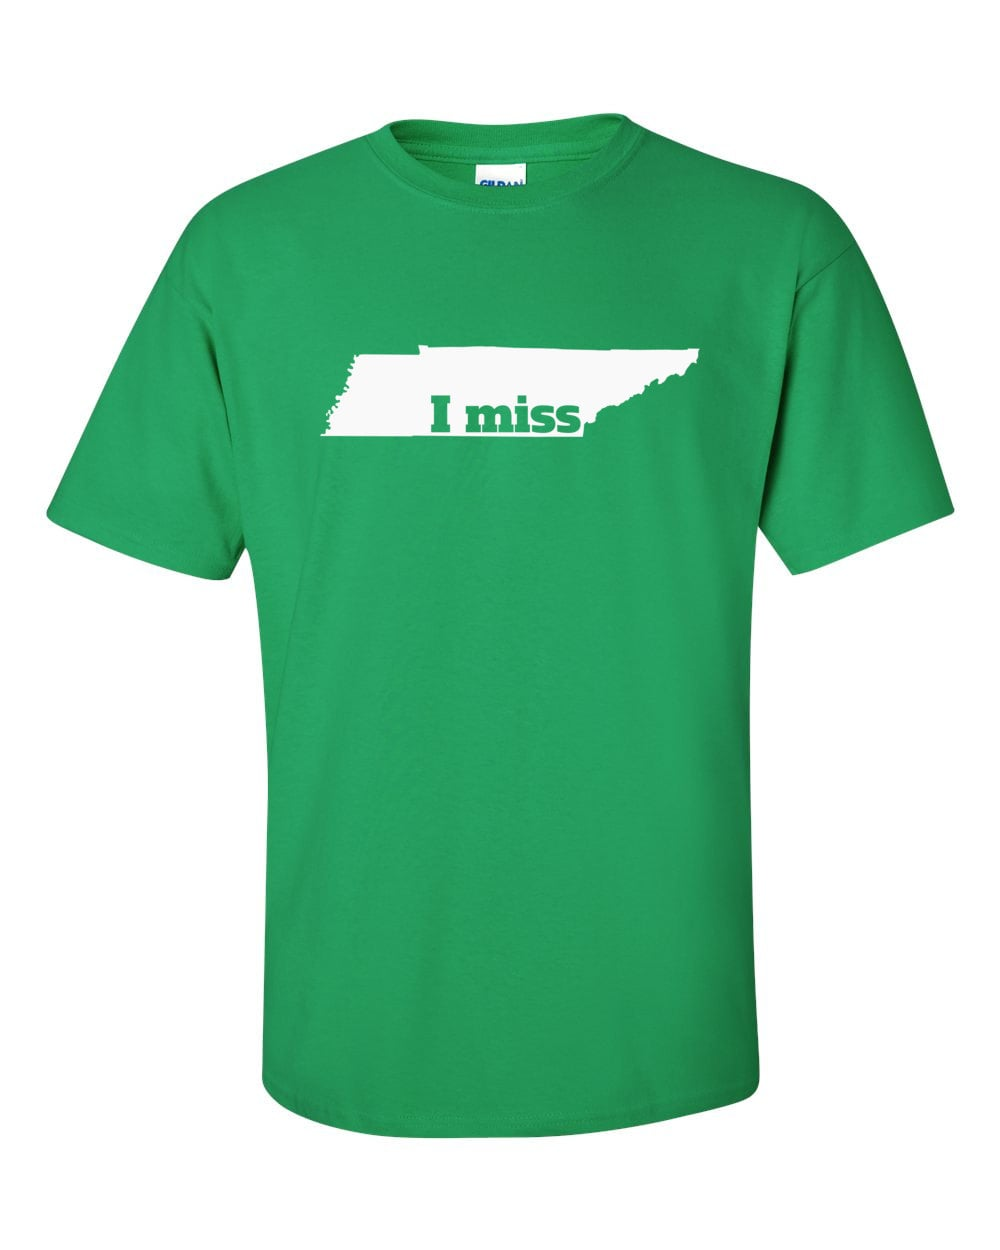 Tennessee T-shirt - I Miss Tennessee - My State Tennessee T-shirt